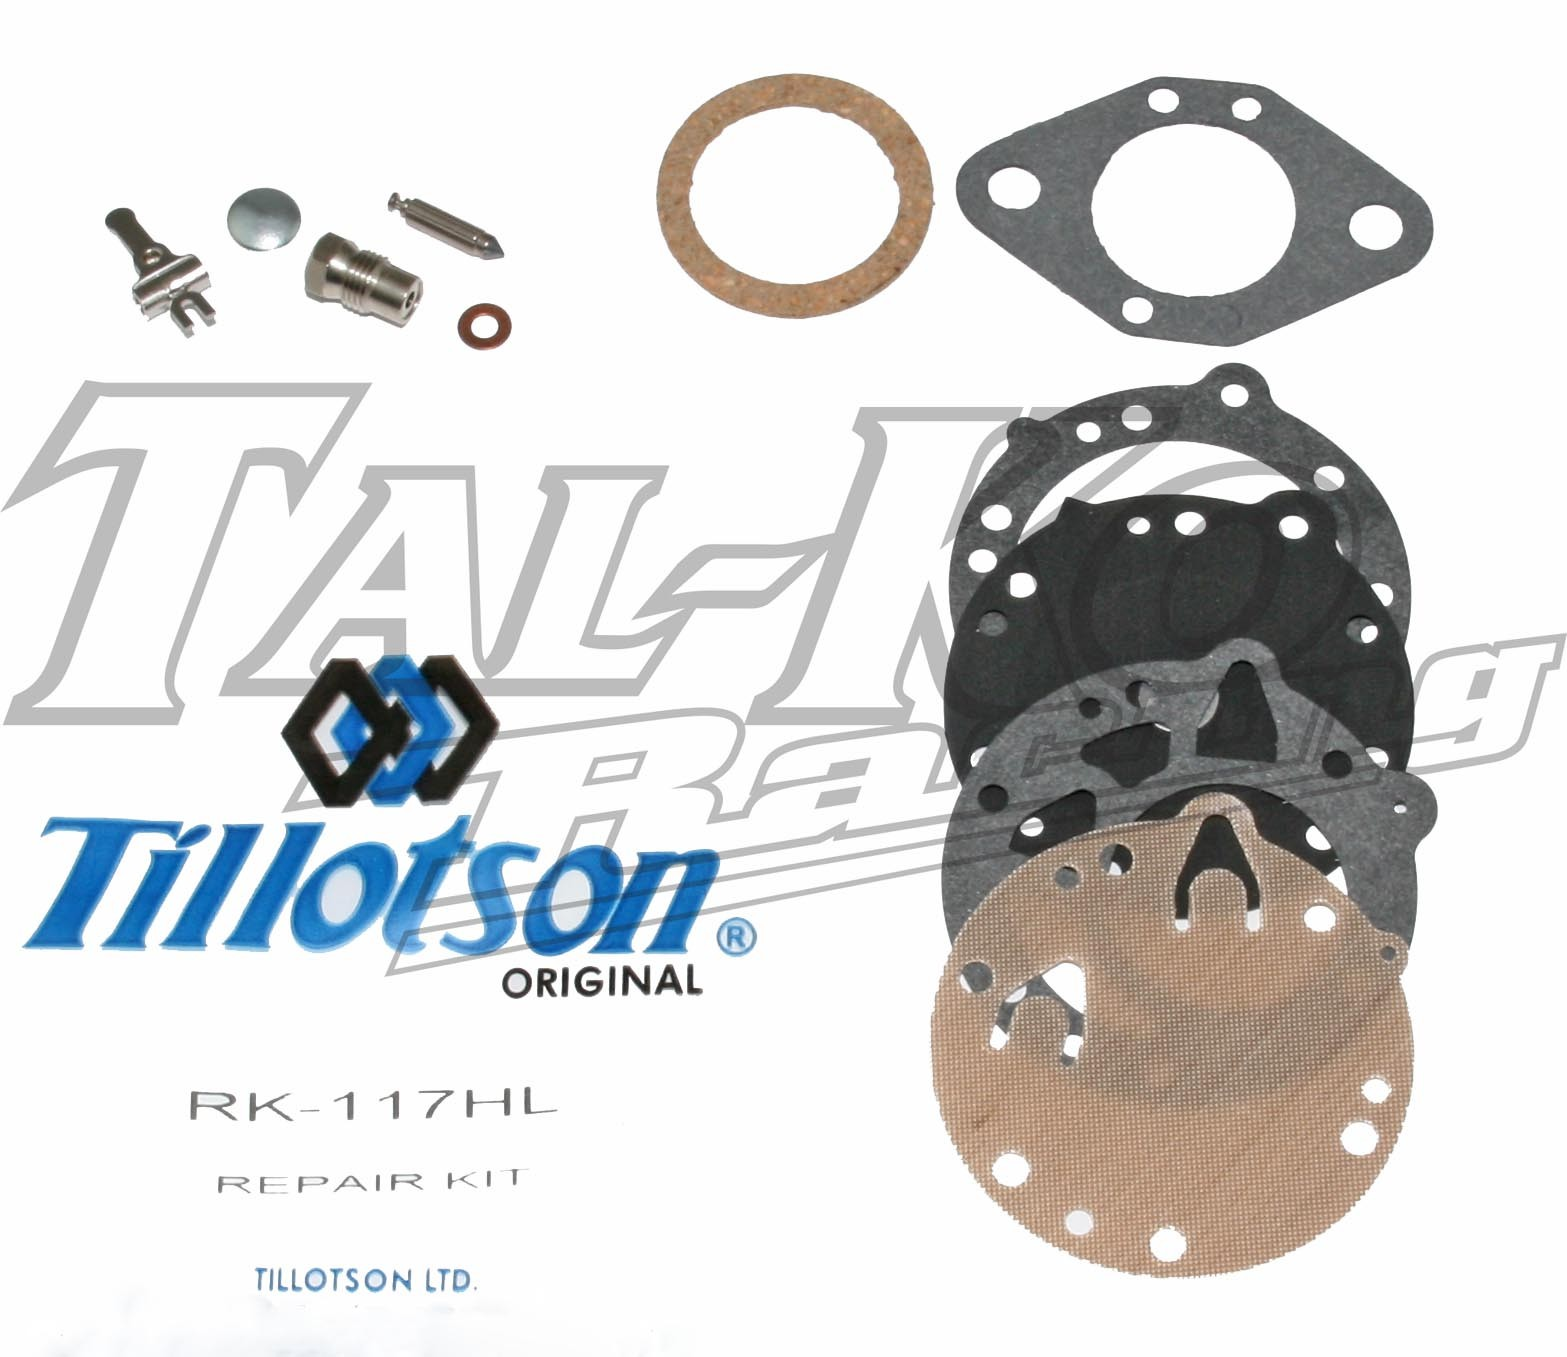 TILLOTSON HL CARB REPAIR KIT RK-117HL FULL